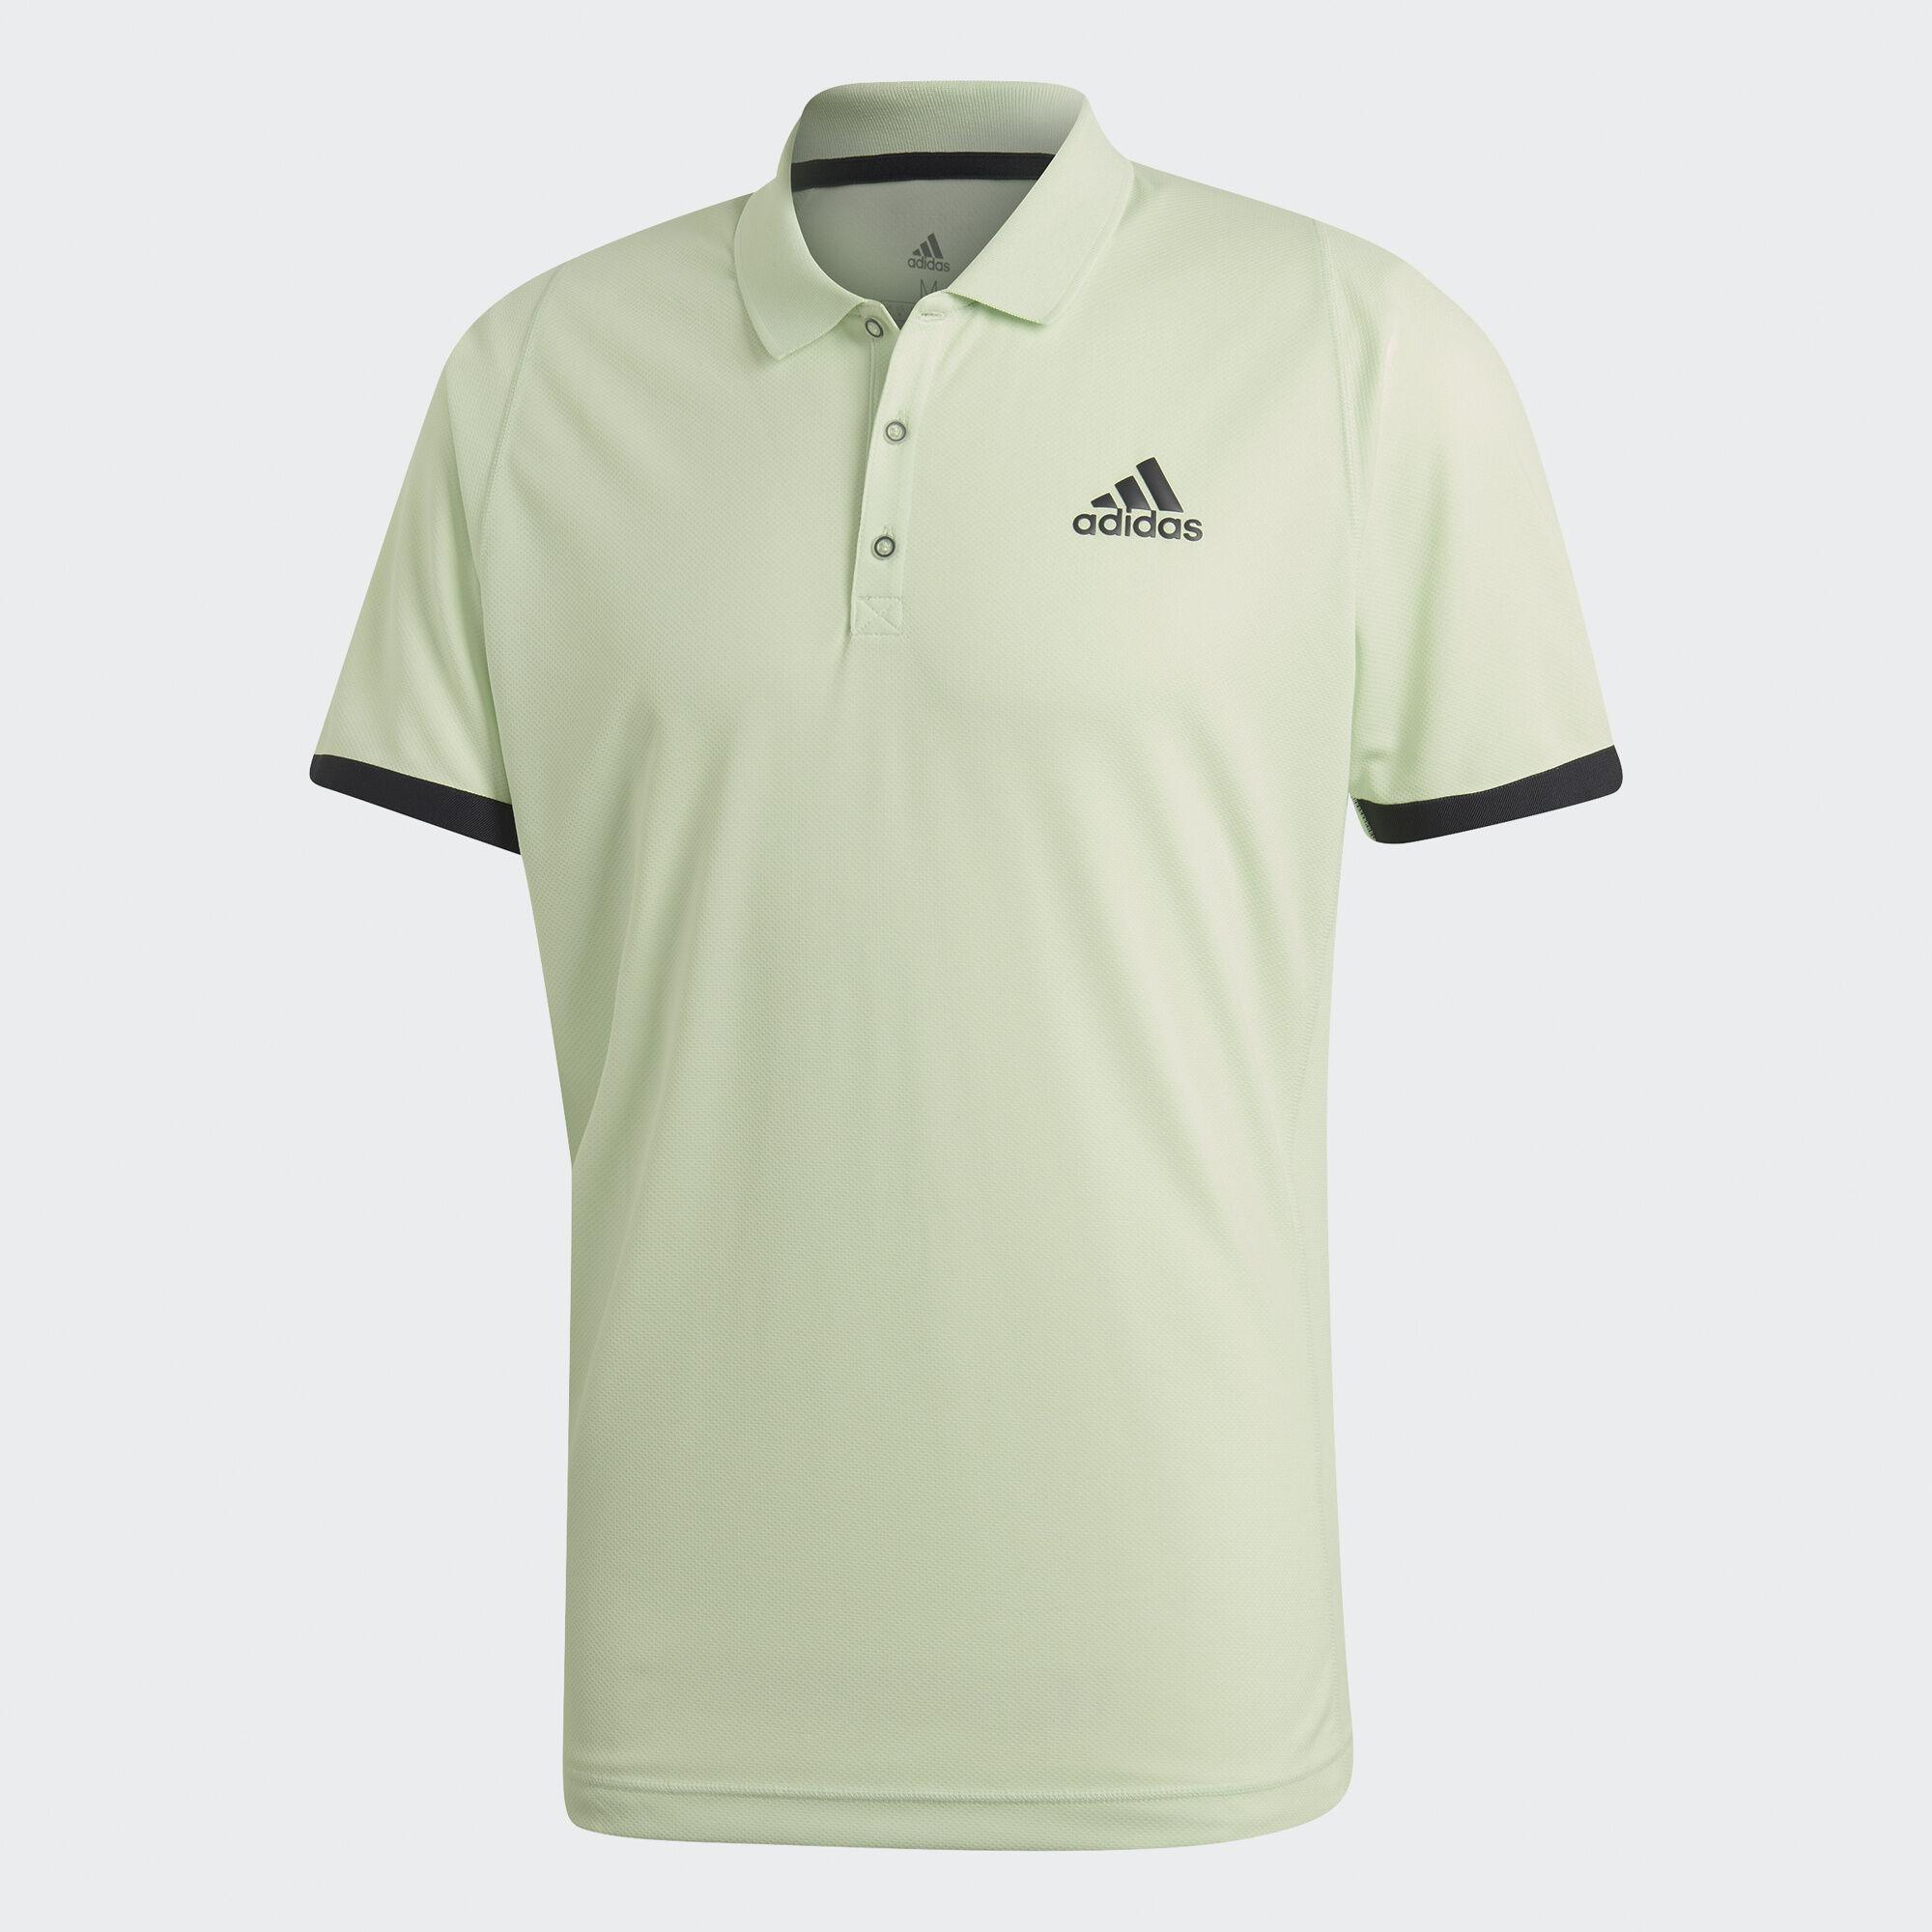 Adidas Mens New York Polo T Shirt Glow Green